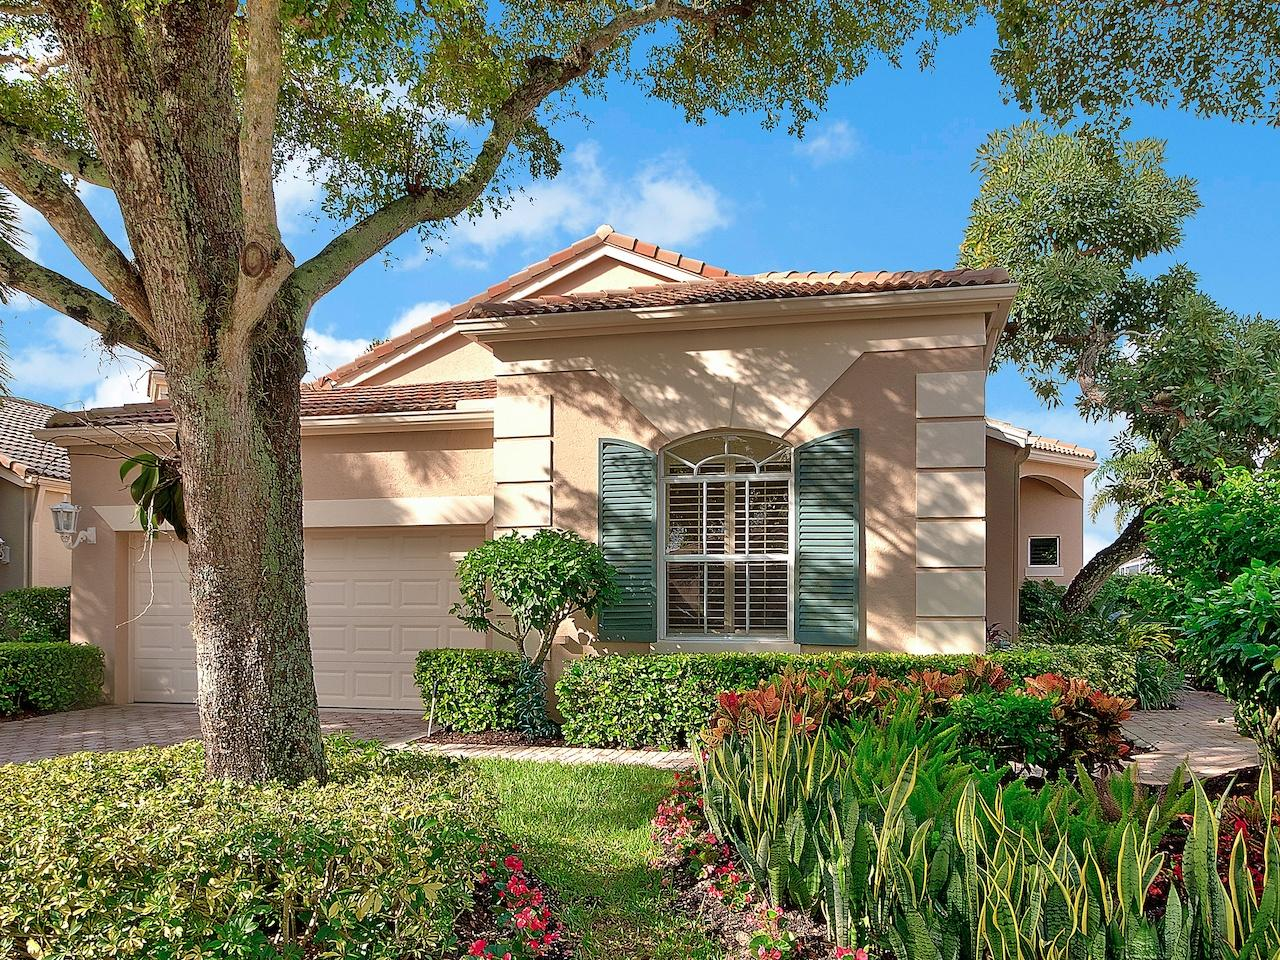 136 Sunset Bay Drive, Palm Beach Gardens, Florida 33418, 3 Bedrooms Bedrooms, ,2.1 BathroomsBathrooms,A,Single family,Sunset Bay,RX-10559516